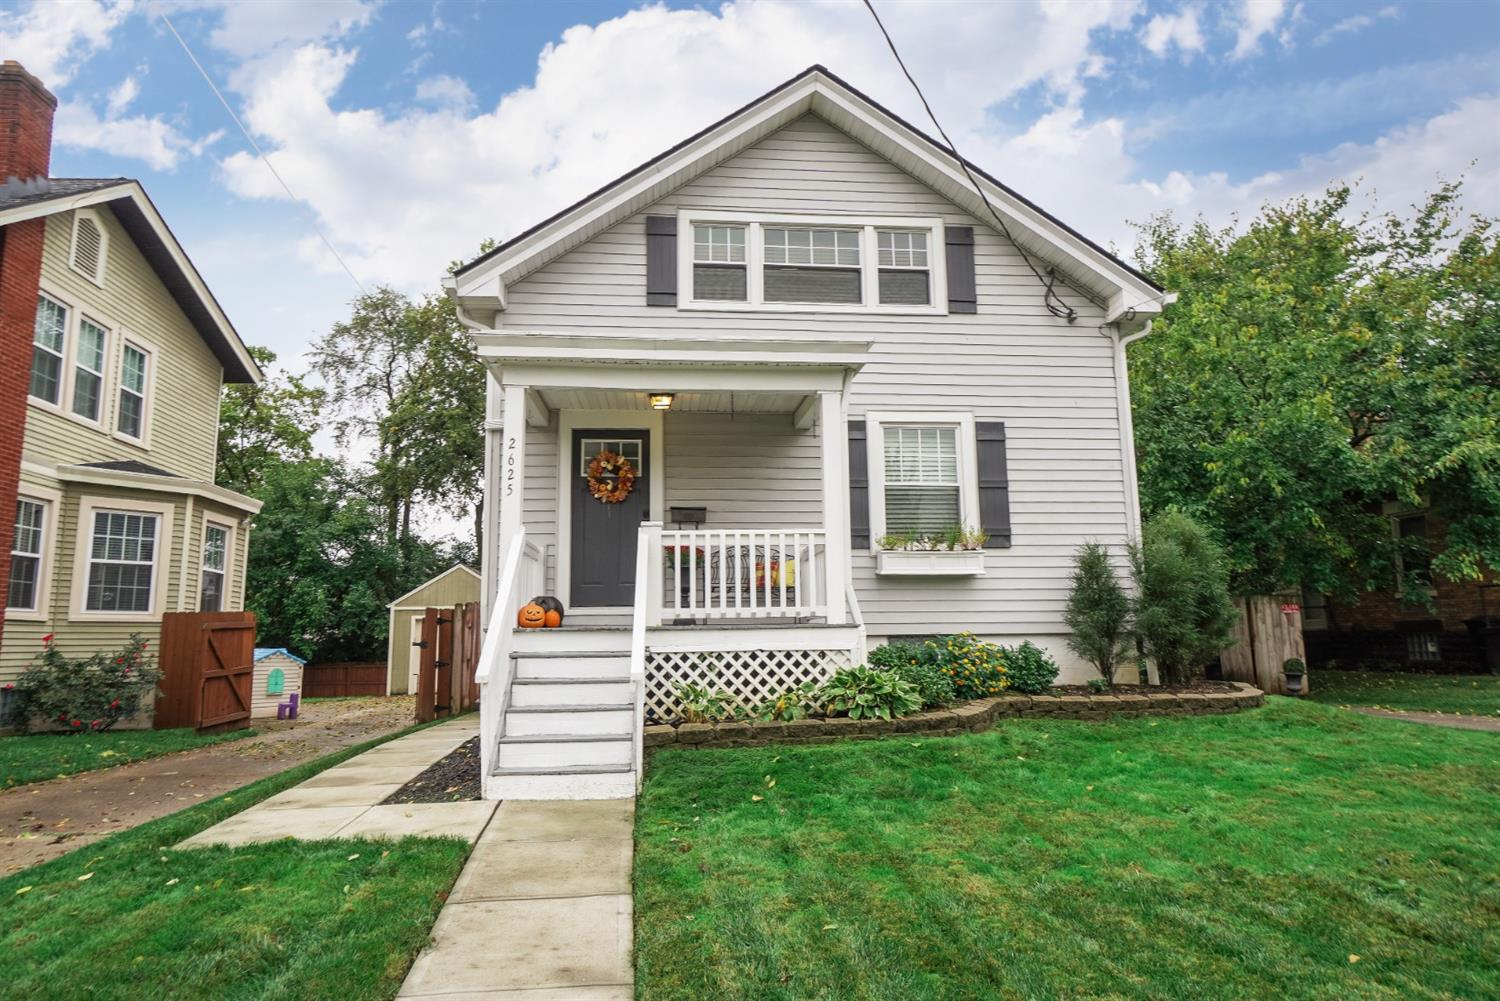 2625 Marsh Avenue, Norwood, Ohio 45212, 2 Bedrooms Bedrooms, 7 Rooms Rooms,2 BathroomsBathrooms,Single Family Residence,For Sale,Marsh,1718480